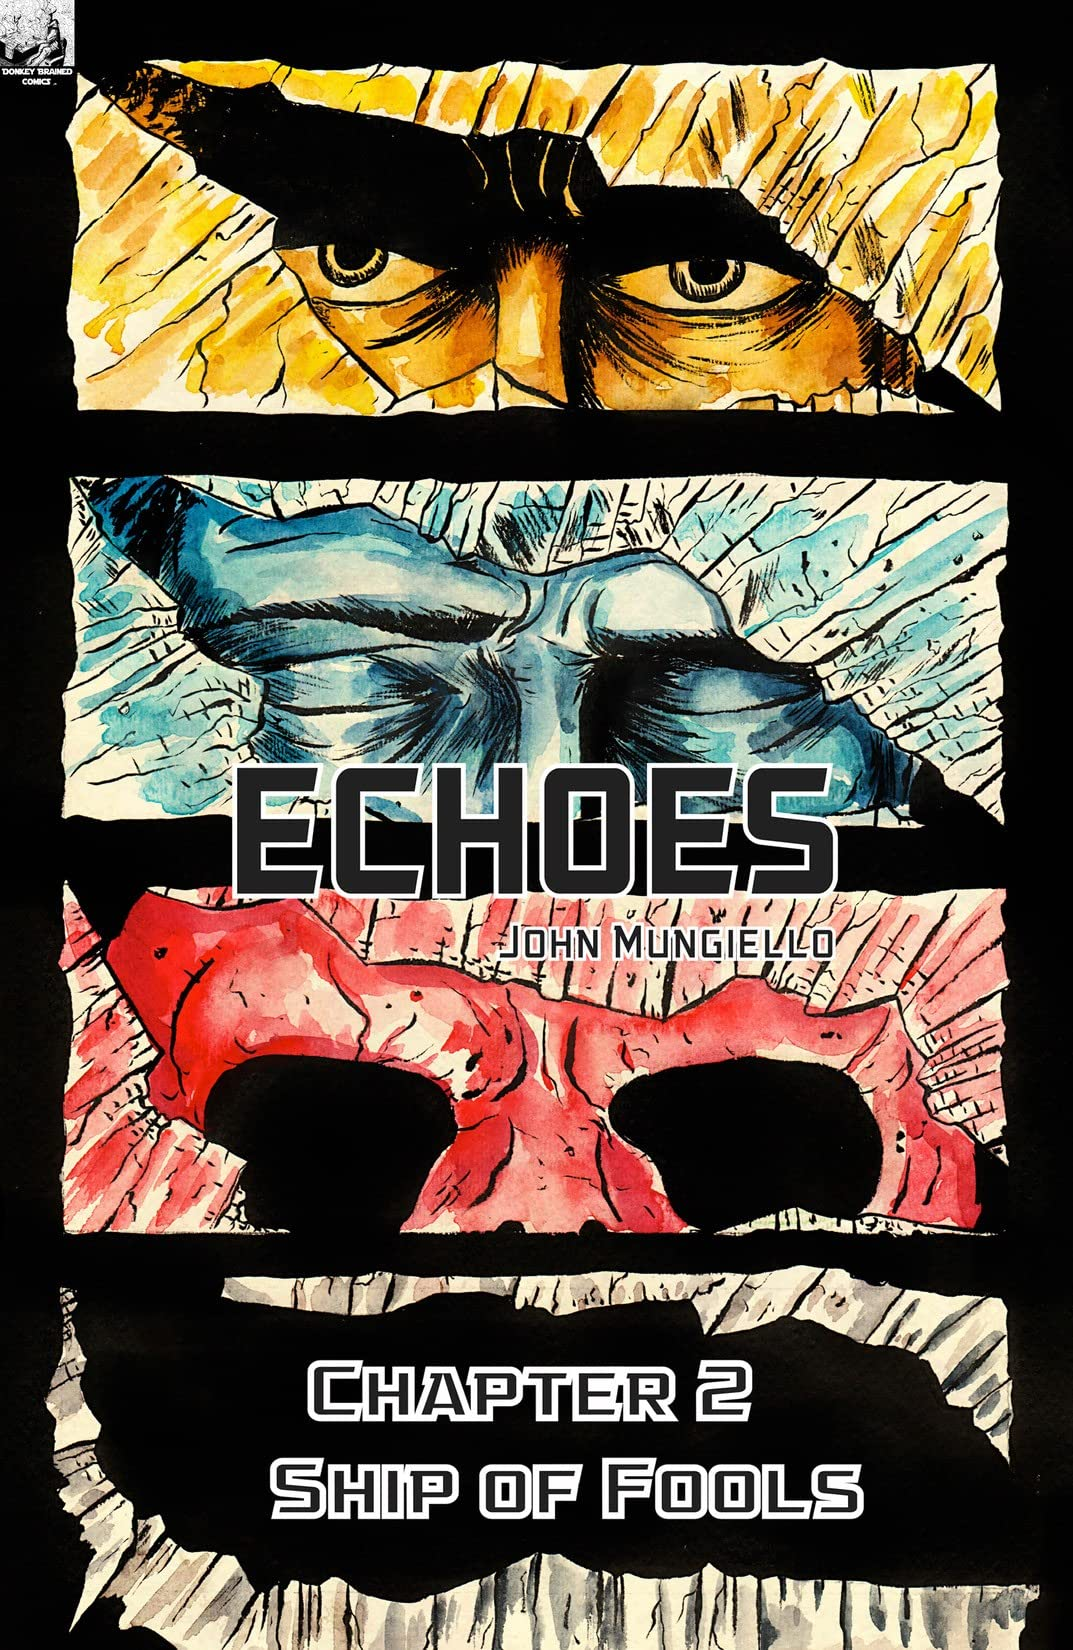 Echoes #2